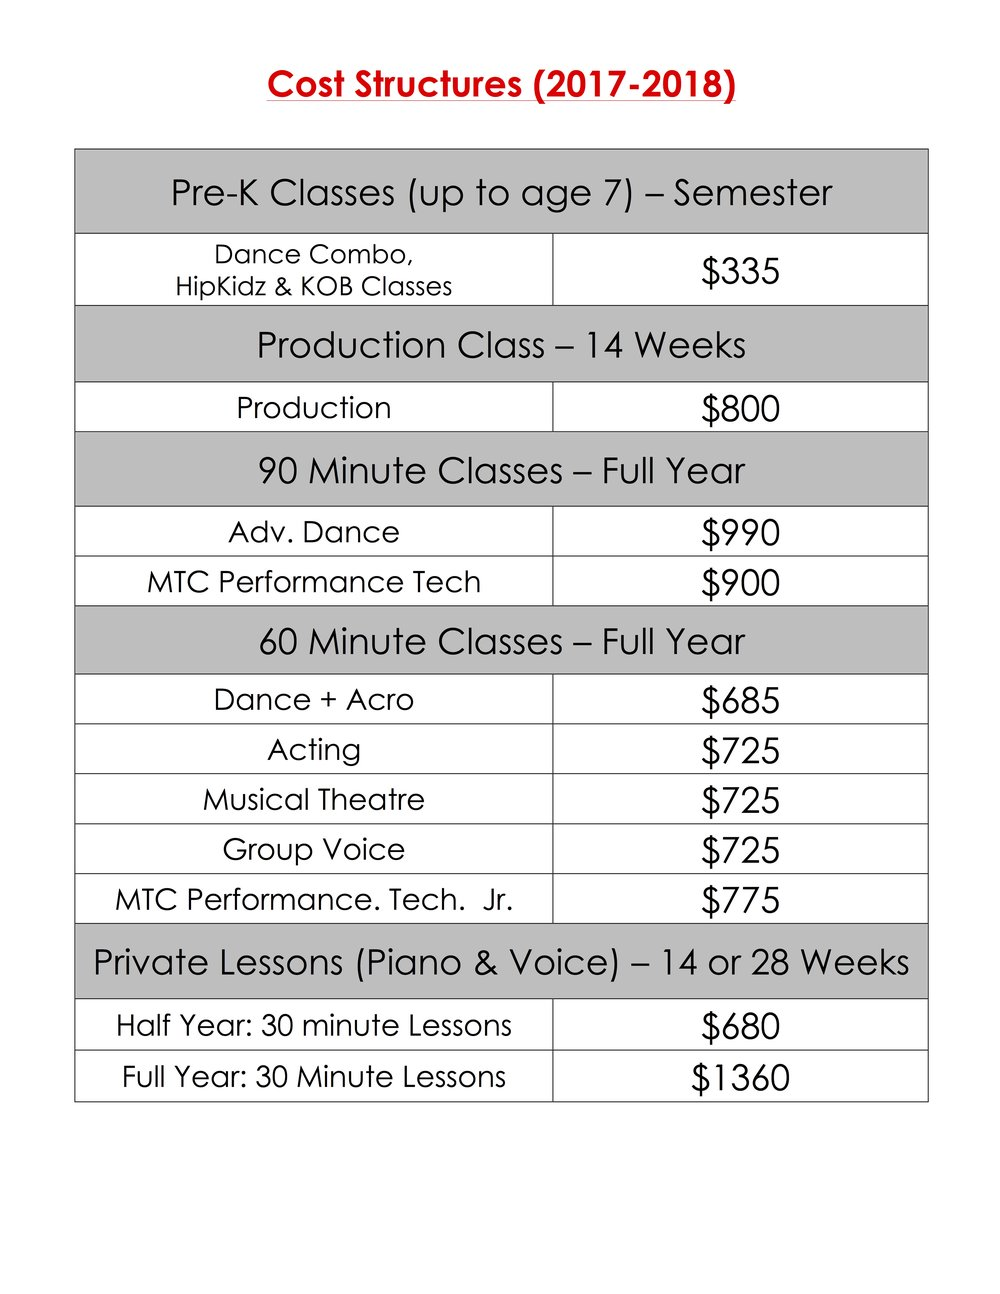 Cost Structures 2017-2018.jpg